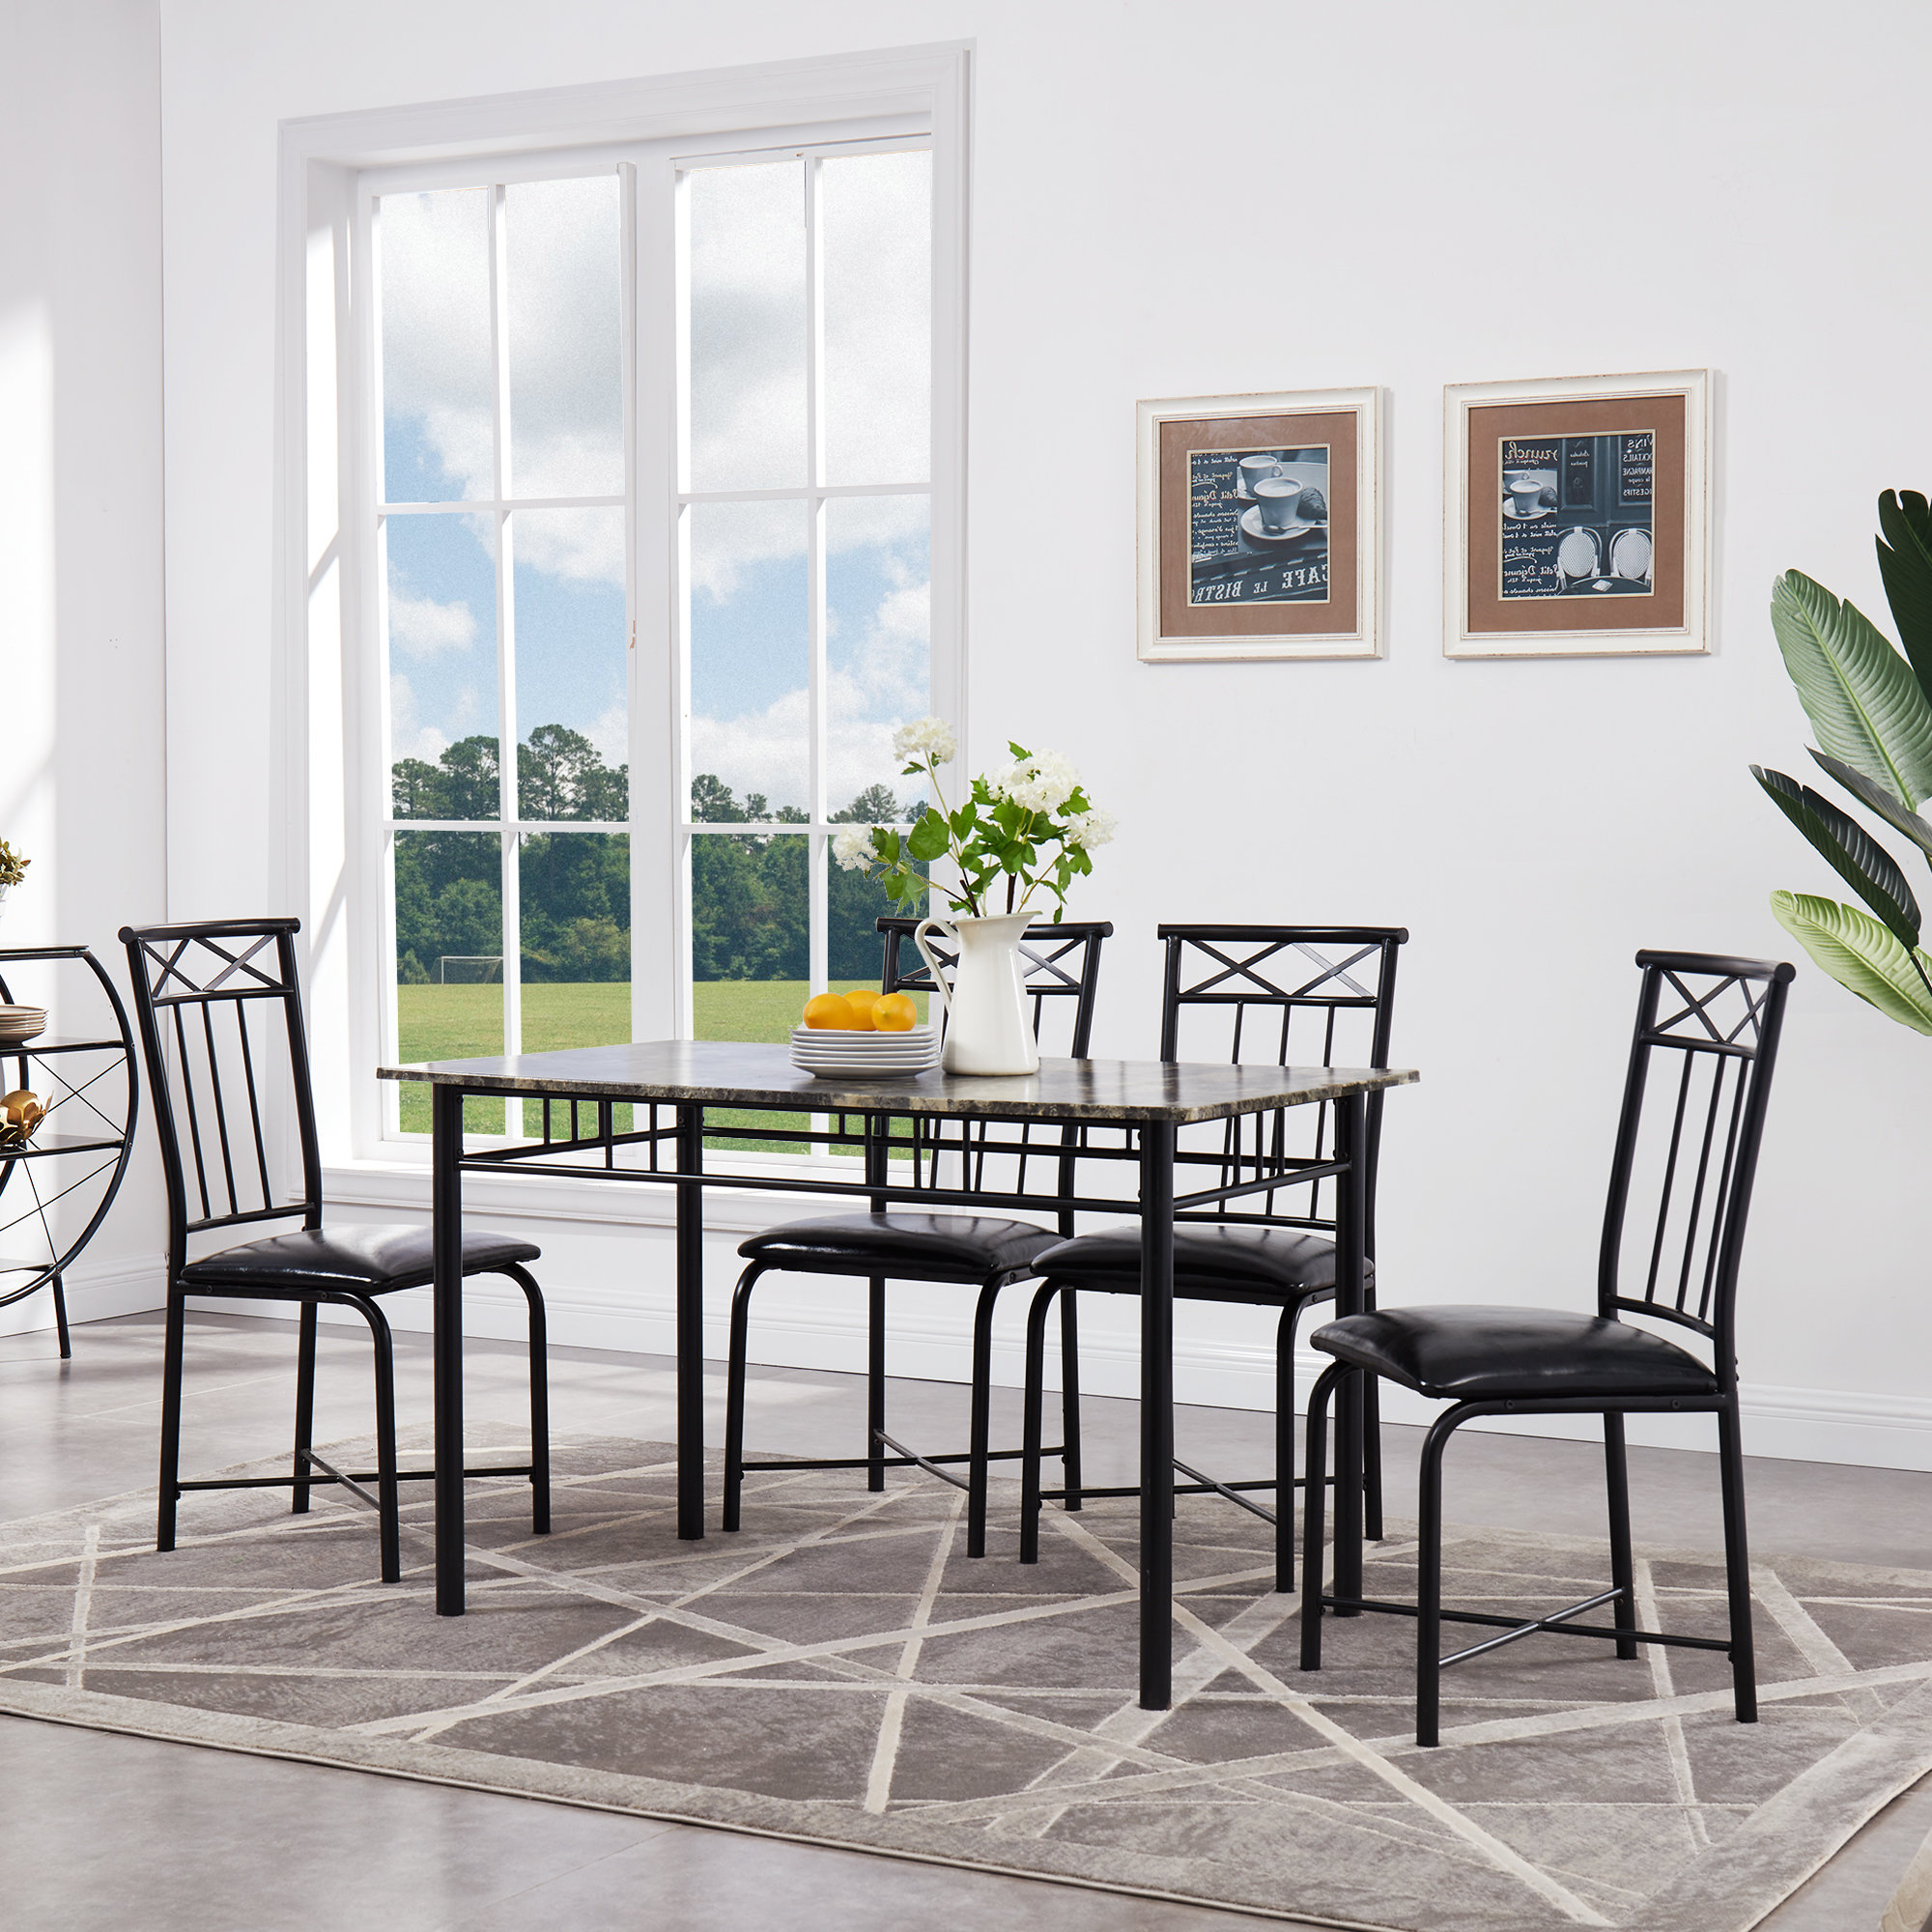 Reinert 5 Piece Dining Set Regarding Favorite Taulbee 5 Piece Dining Sets (Gallery 3 of 20)